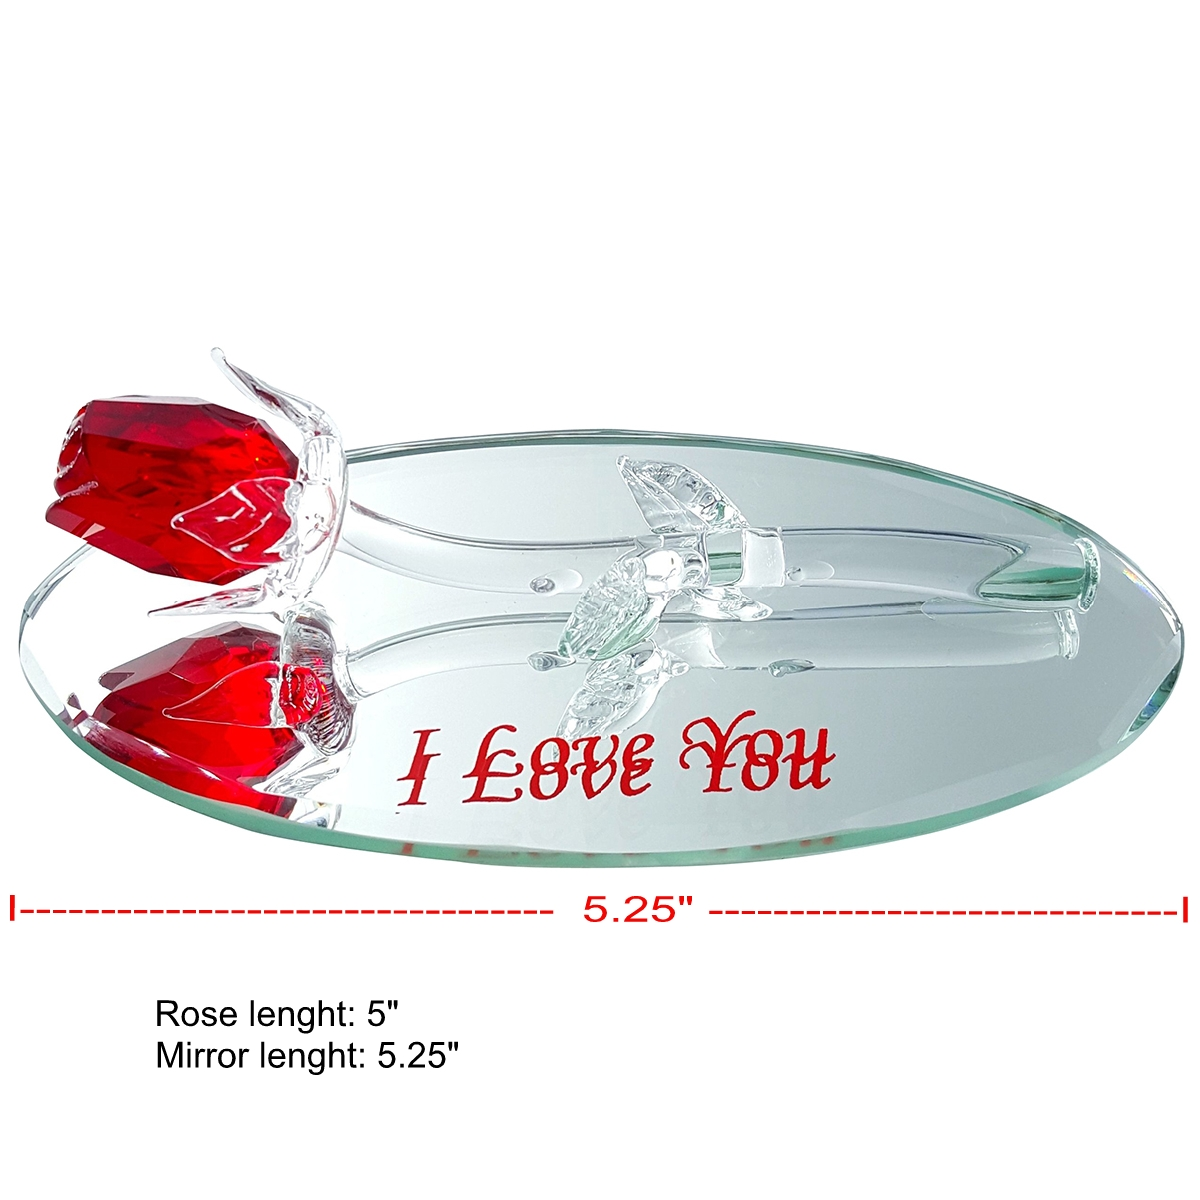 Crystal Red Rose on Oval Mirror